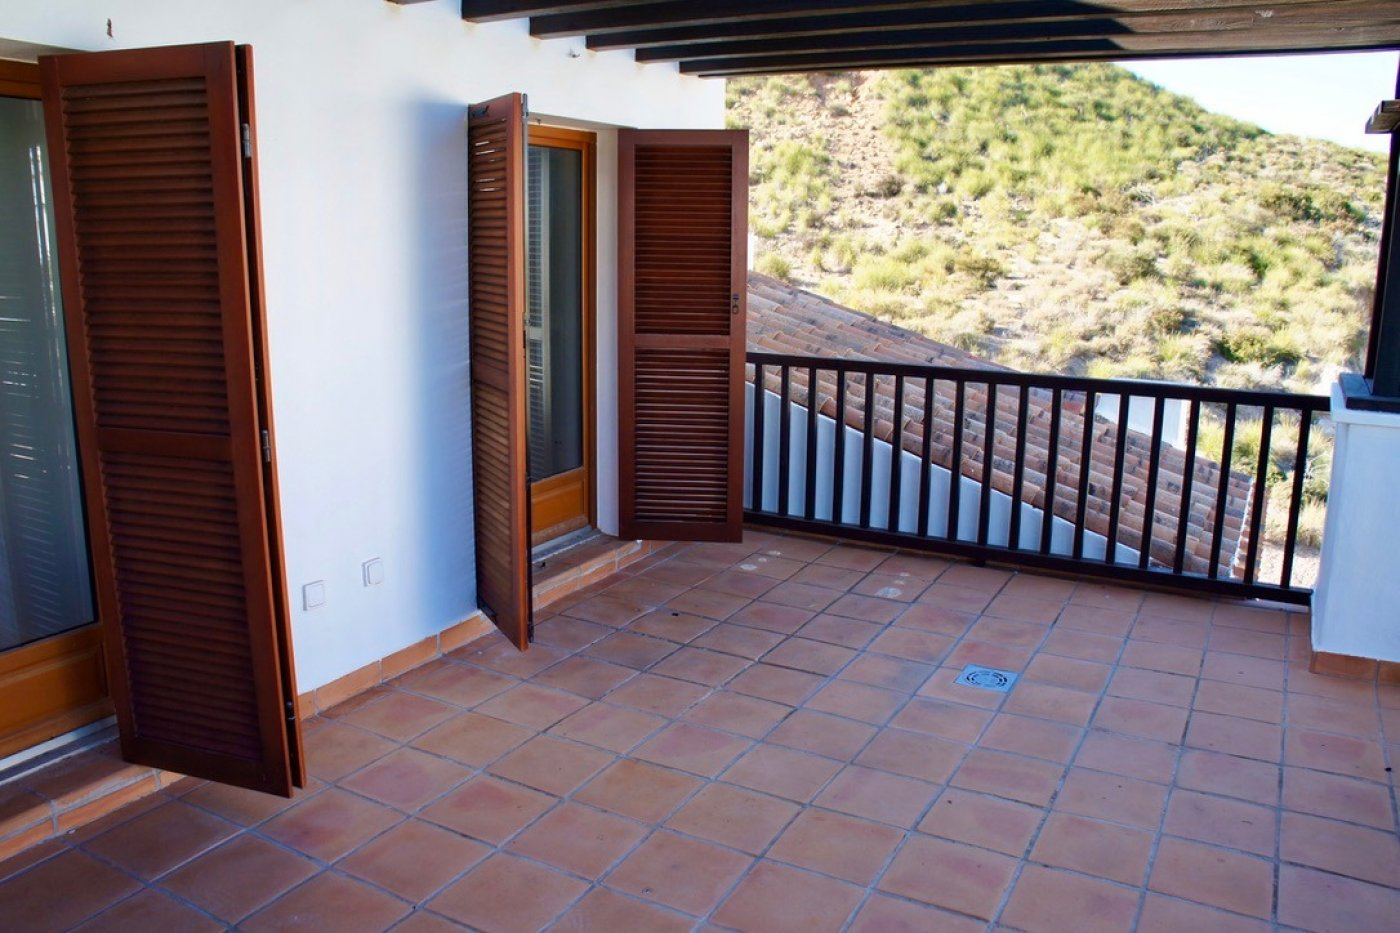 Gallery Image 18 of Nice 2nd  garden flat with views, 2 bed and 2 bath in lovely Golf Resort